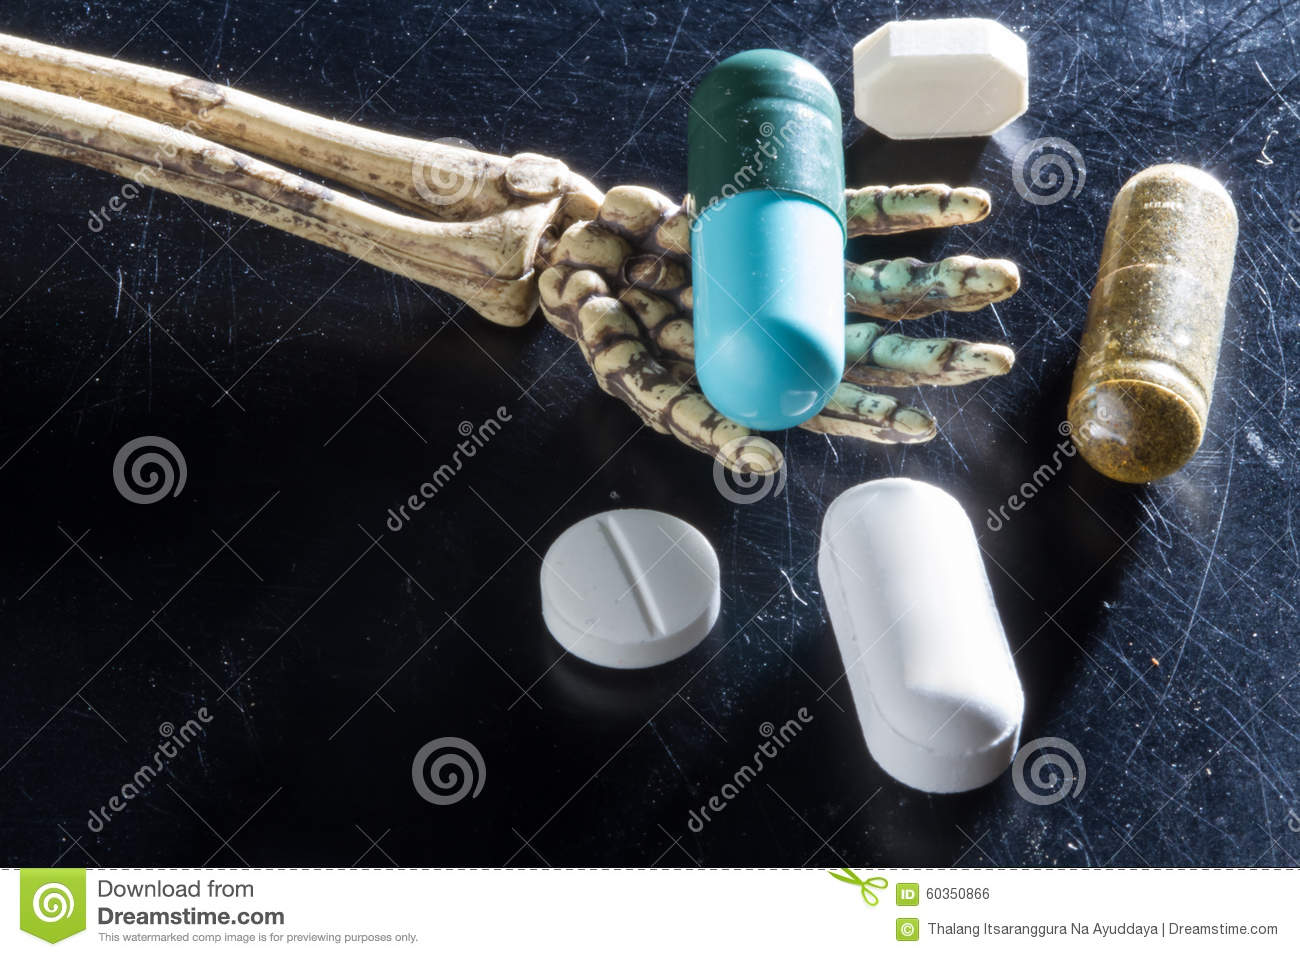 Drugs on hand bones